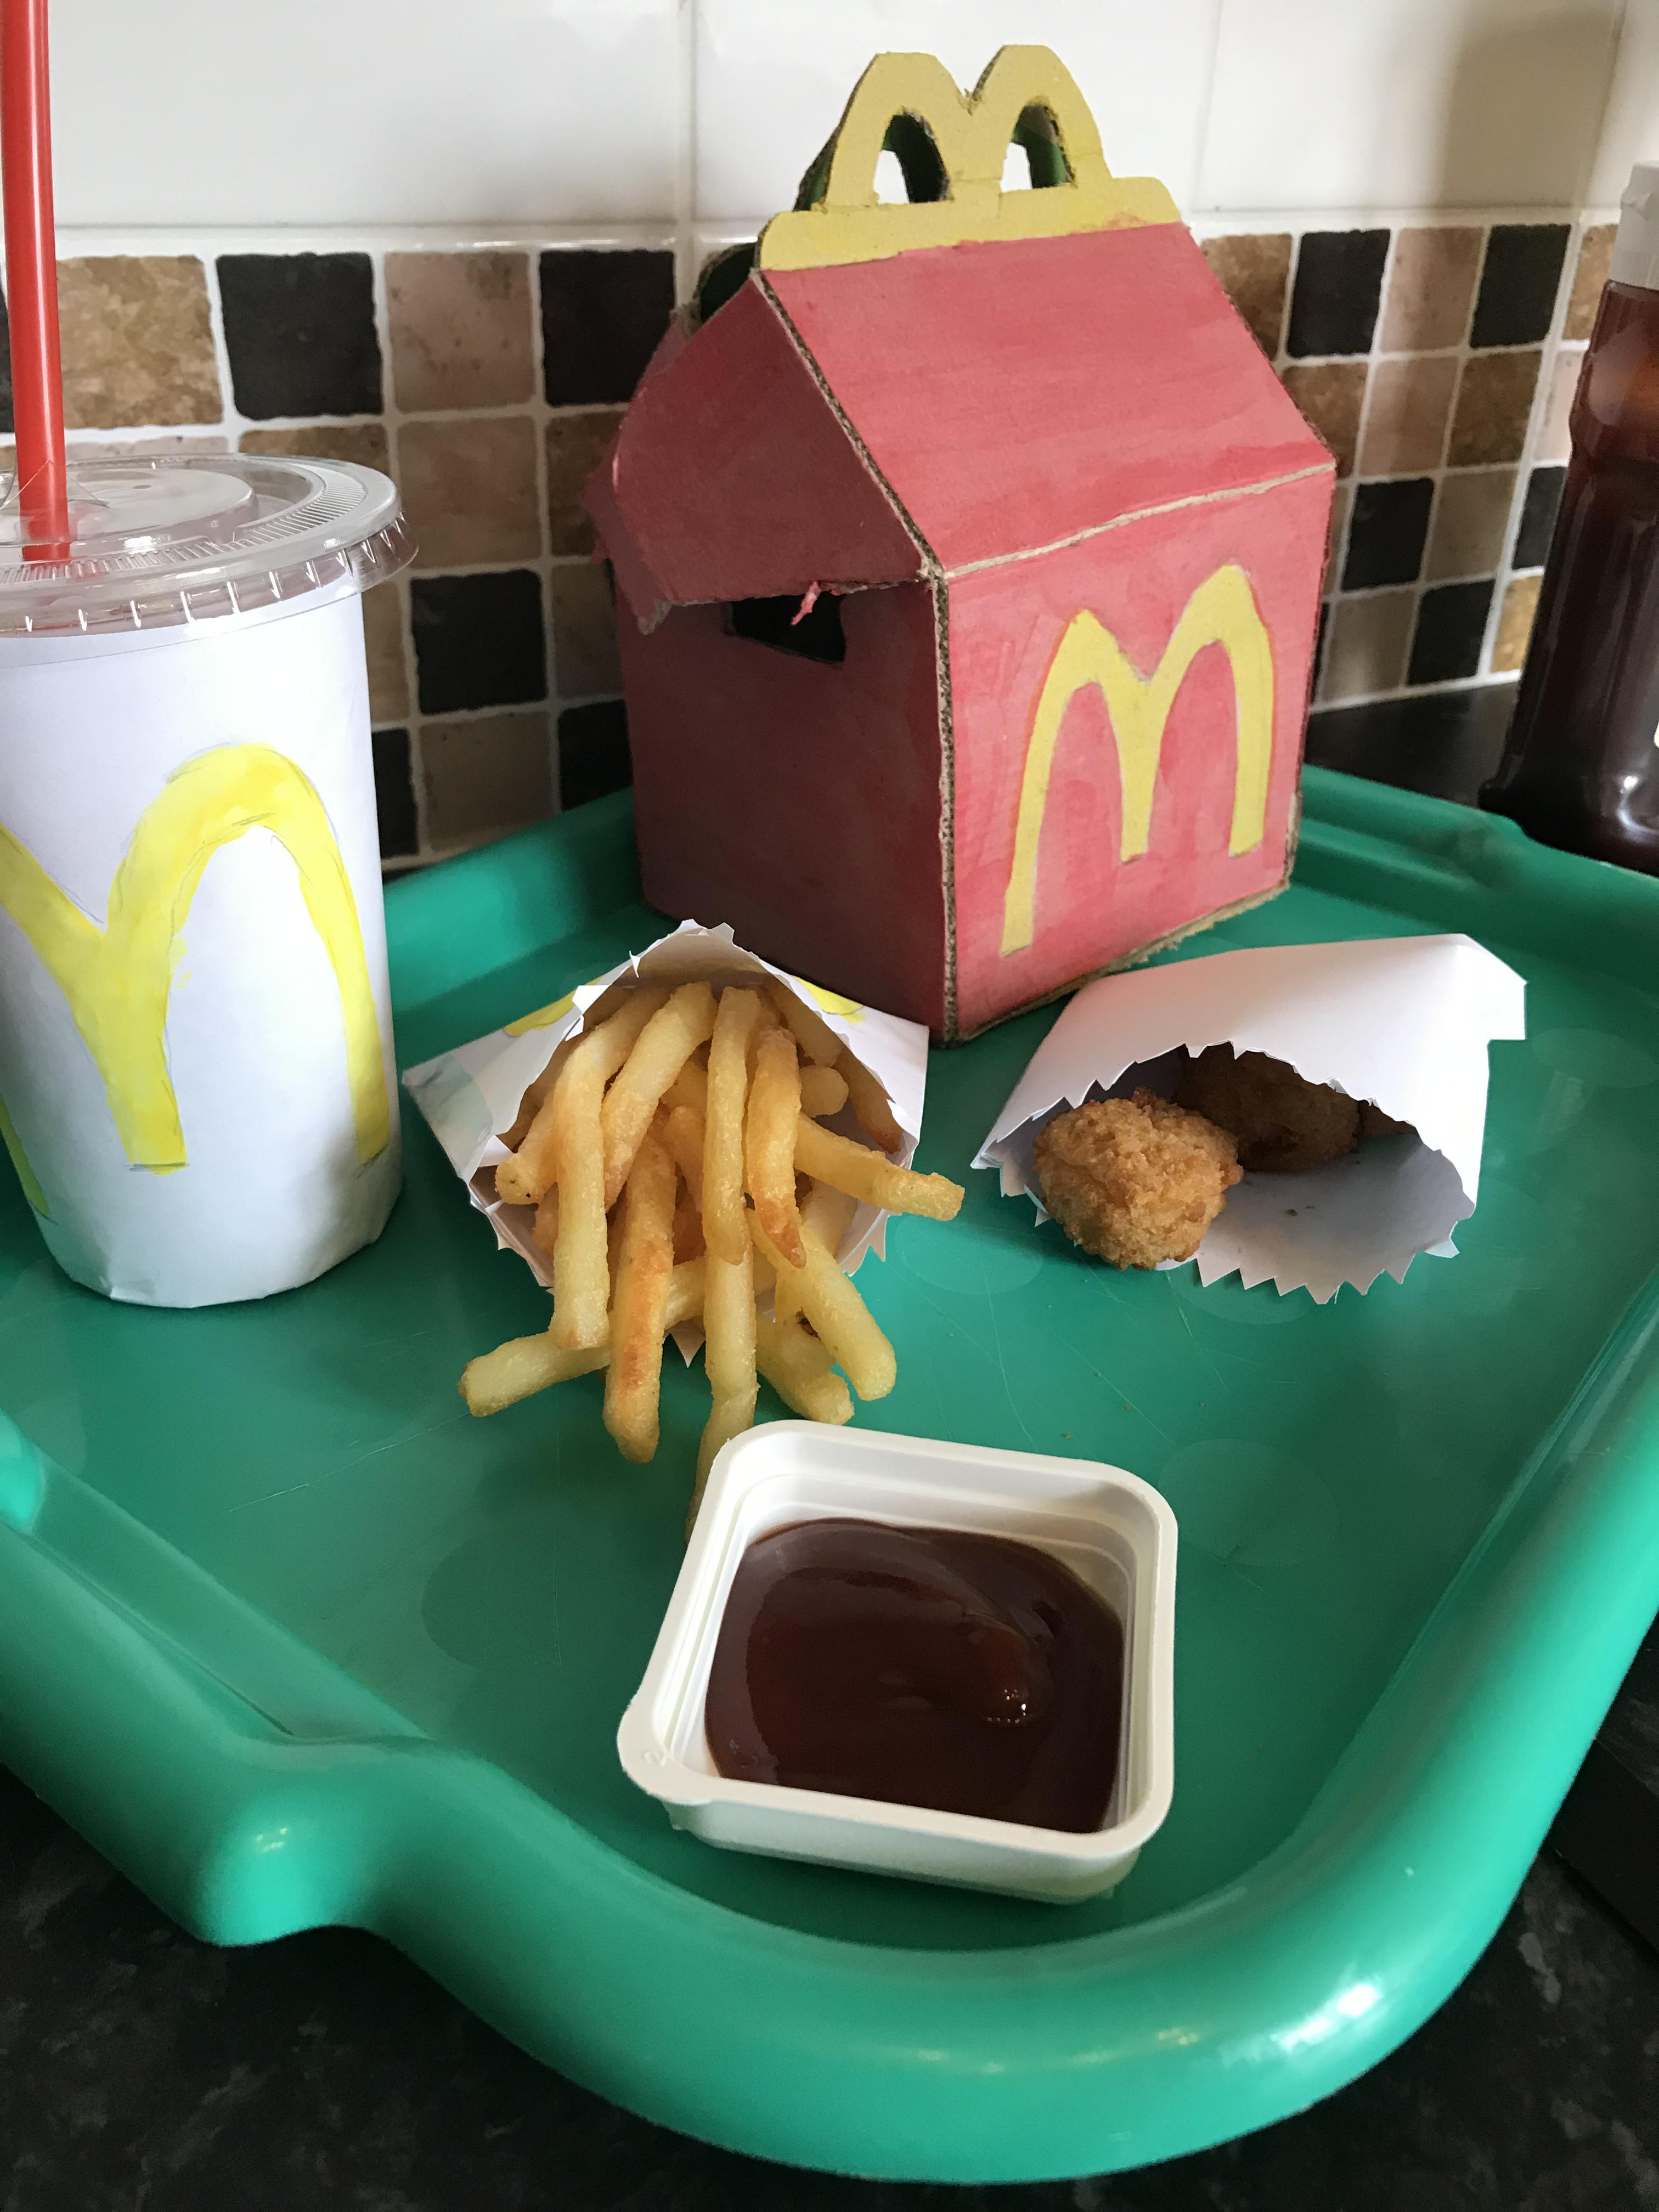 Family Recreates McDonald's Happy Meal For Son During Isolation